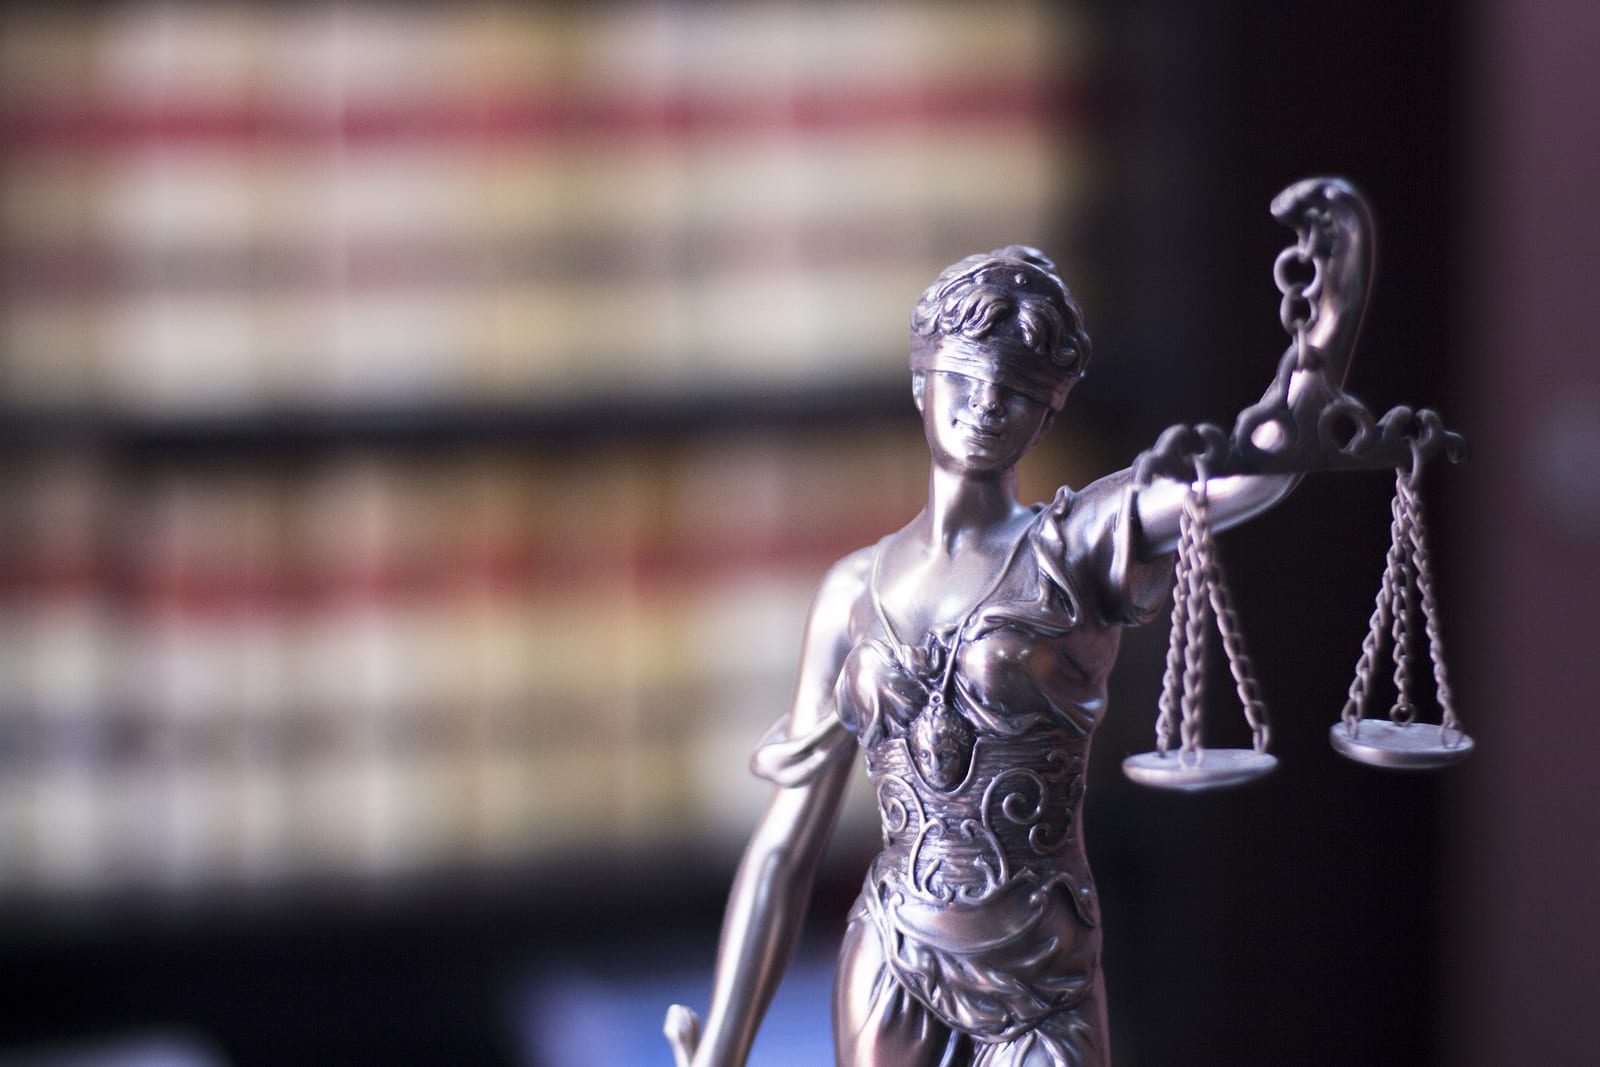 New York News: Former PCAOB Inspections Leader And KPMG Executive Director Pleads Guilty To Scheme To Steal Confidential PCAOB Information In Order To Fraudulently Improve KPMG's PCAOB Inspection Results